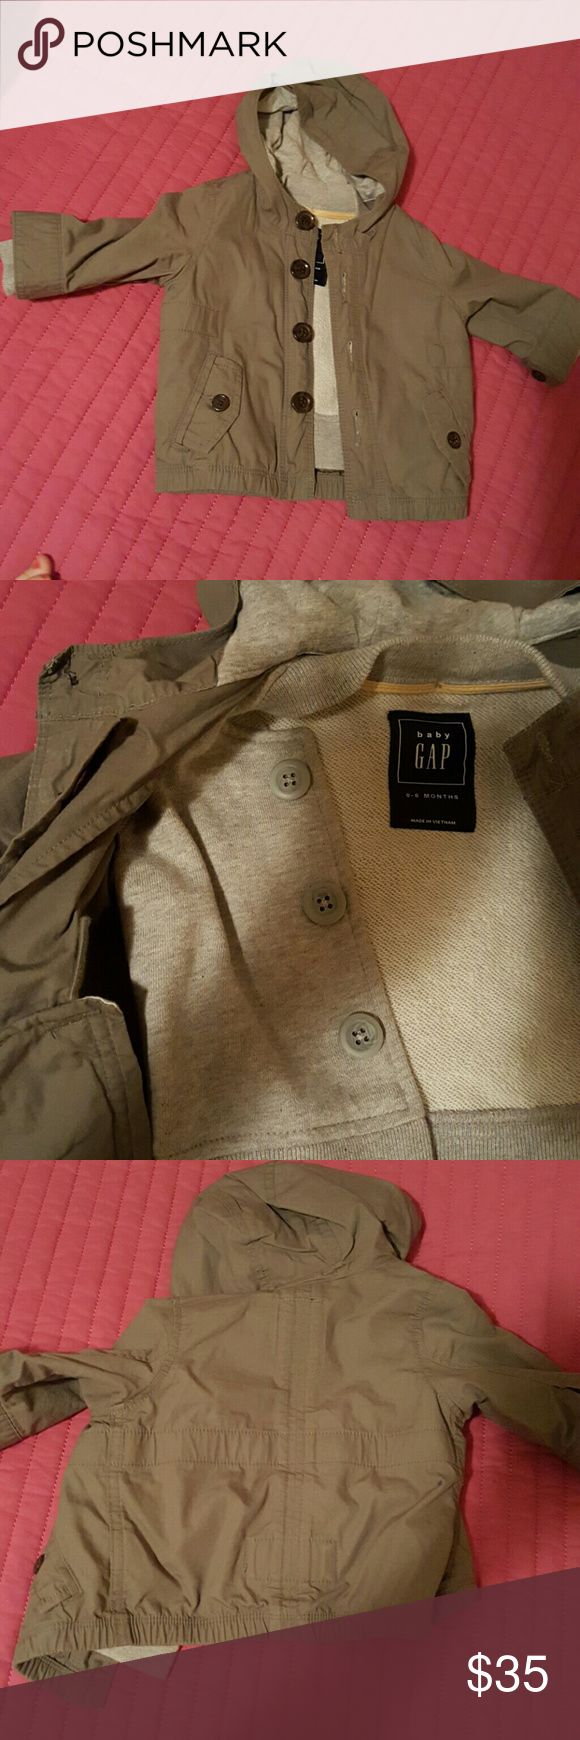 CHRISTMAS SALE Baby gap coat .... 2 in one...worn ones....very warm and perfect for this weather...the bottom is a vest and could be deattached ...army green GAP Jackets & Coats Raincoats